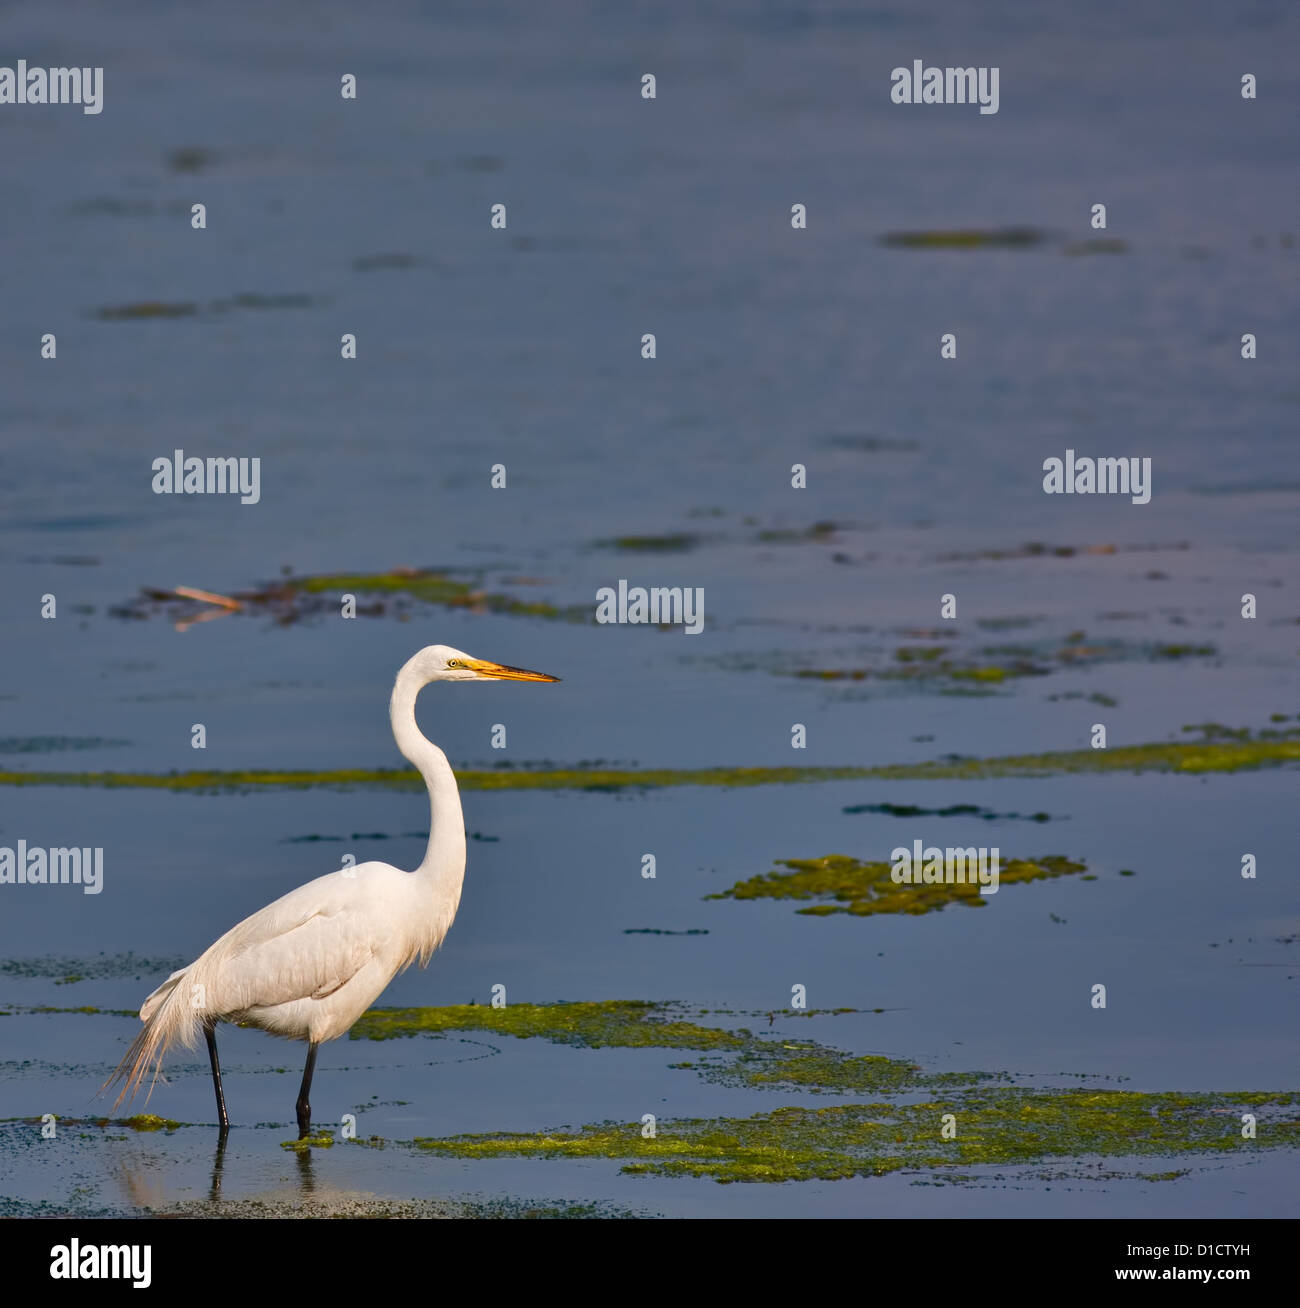 A great white egret in a salt water marsh. The egret is fairly small in the frame leaving plenty of room for text. - Stock Image